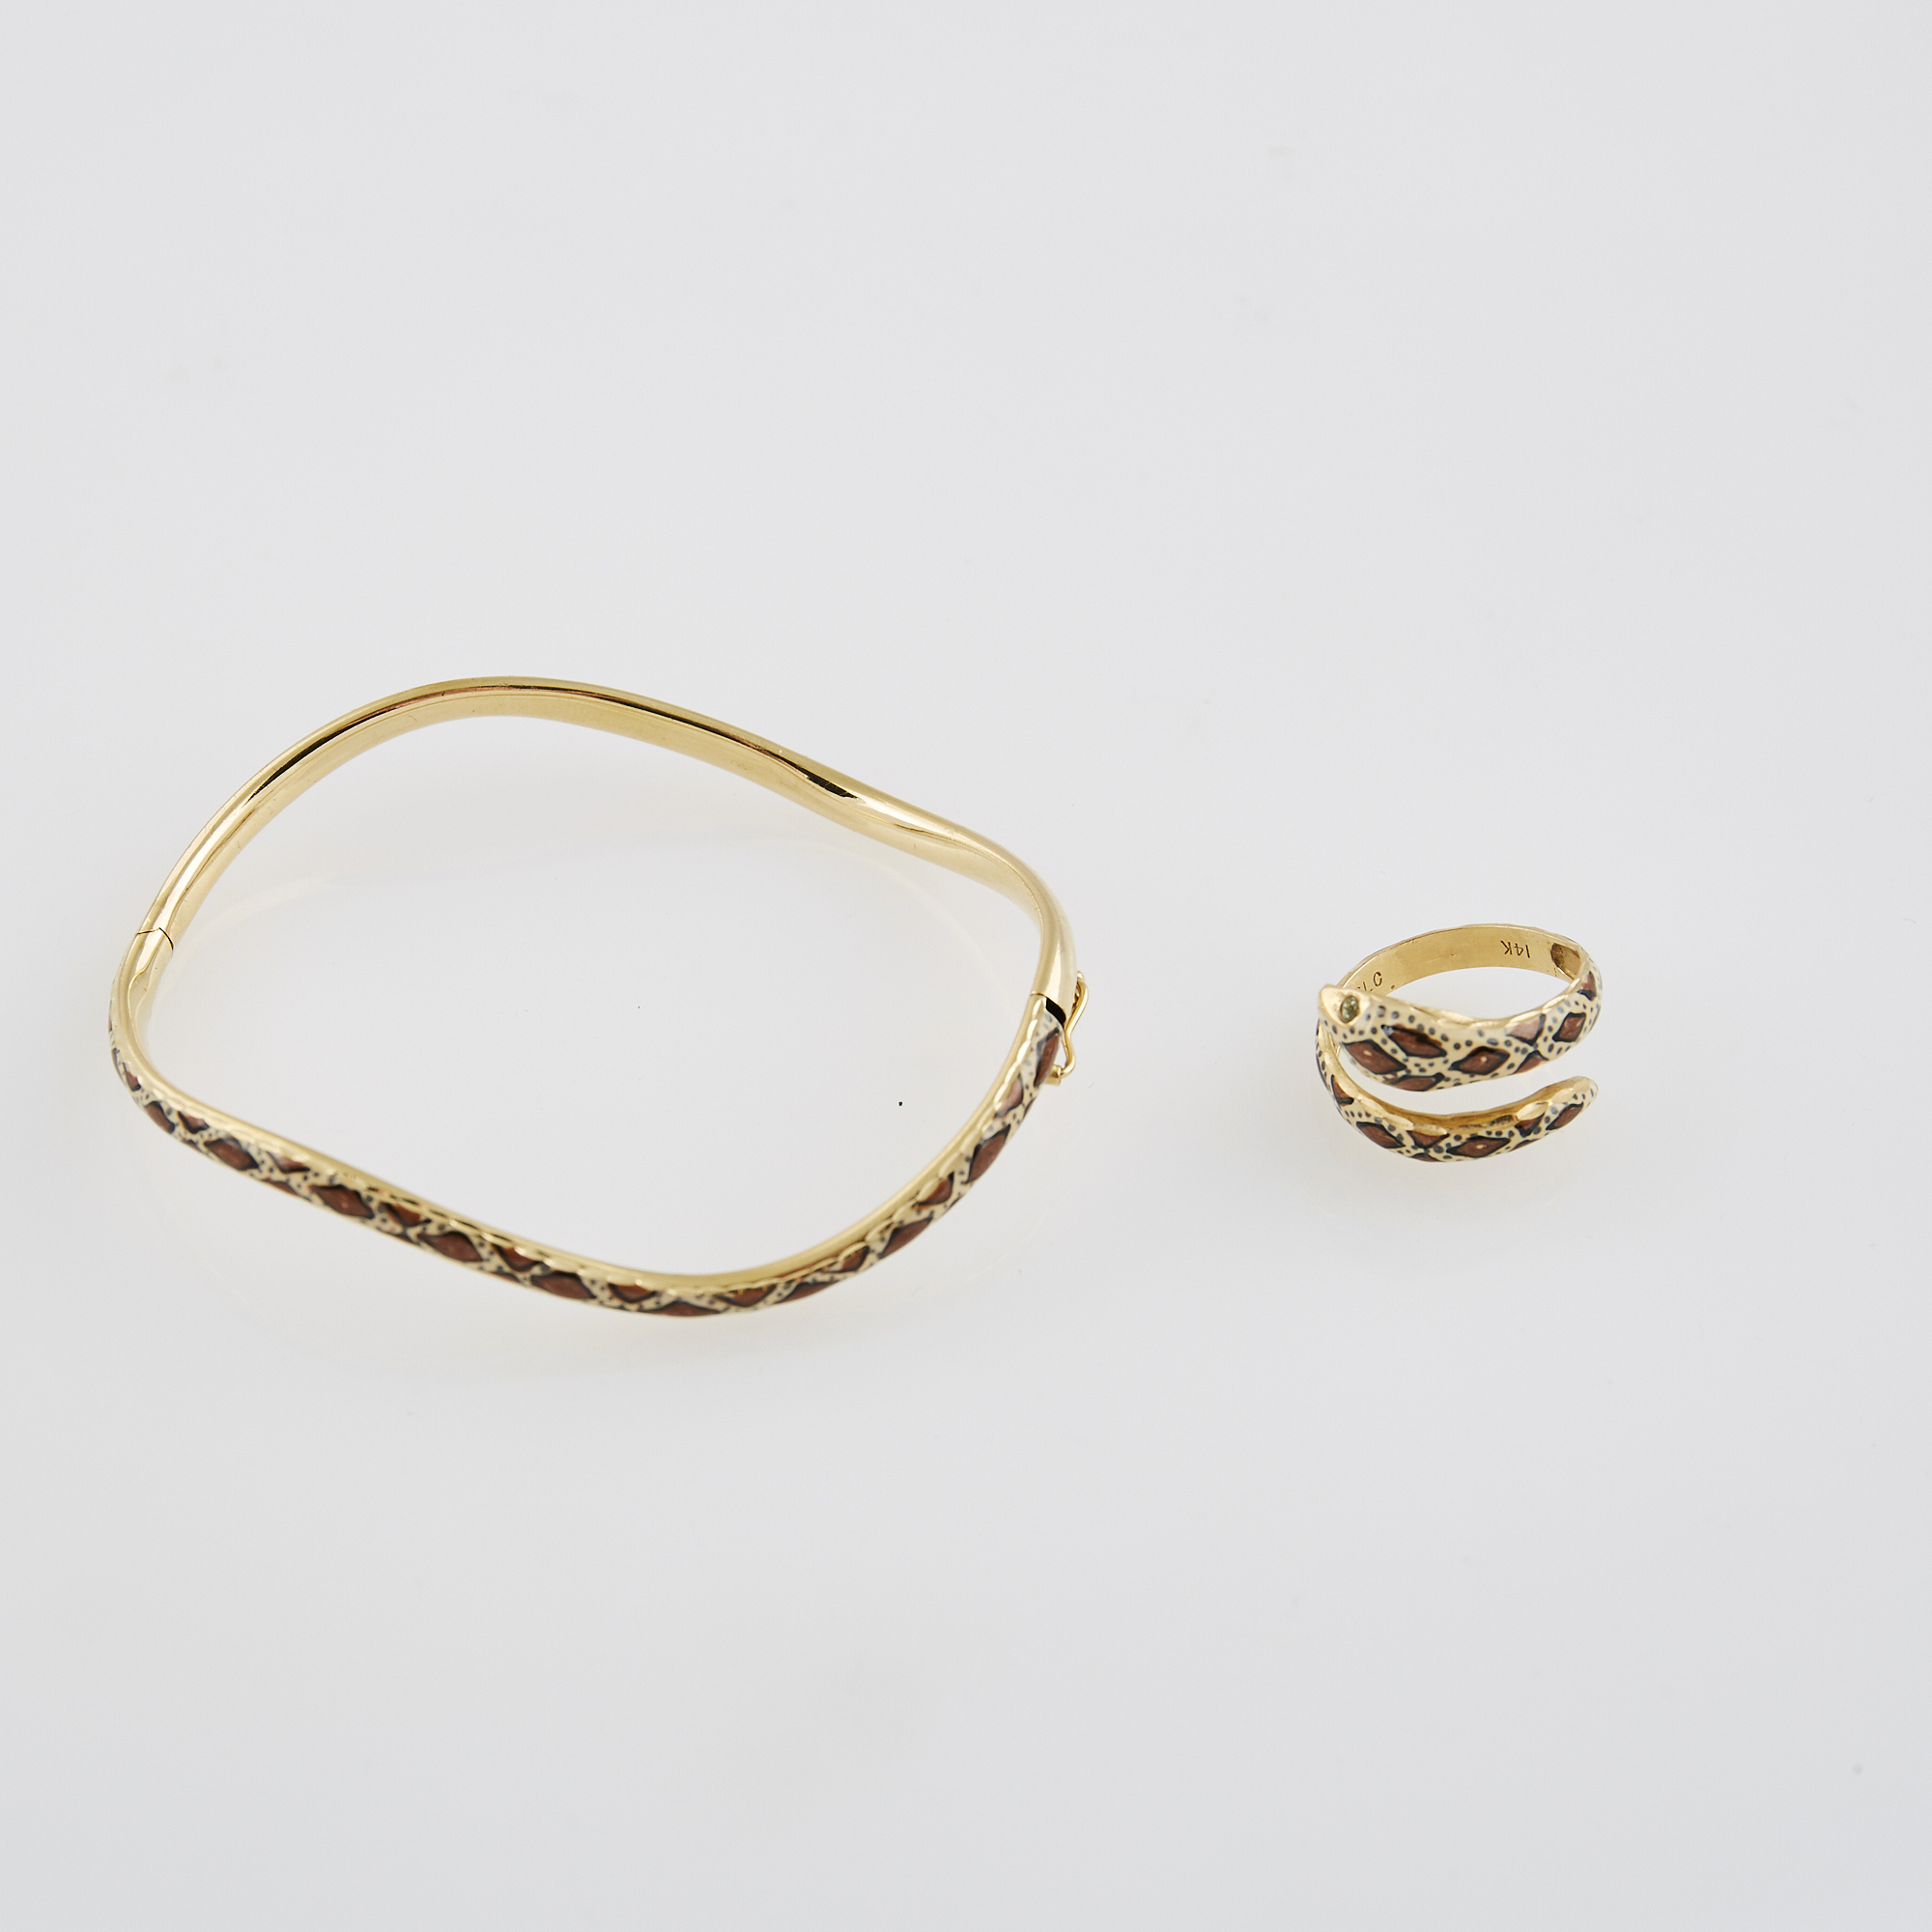 Lot image - Gold and Enamel Ring and Rigid Bracelet, 14K 4 dwt. all